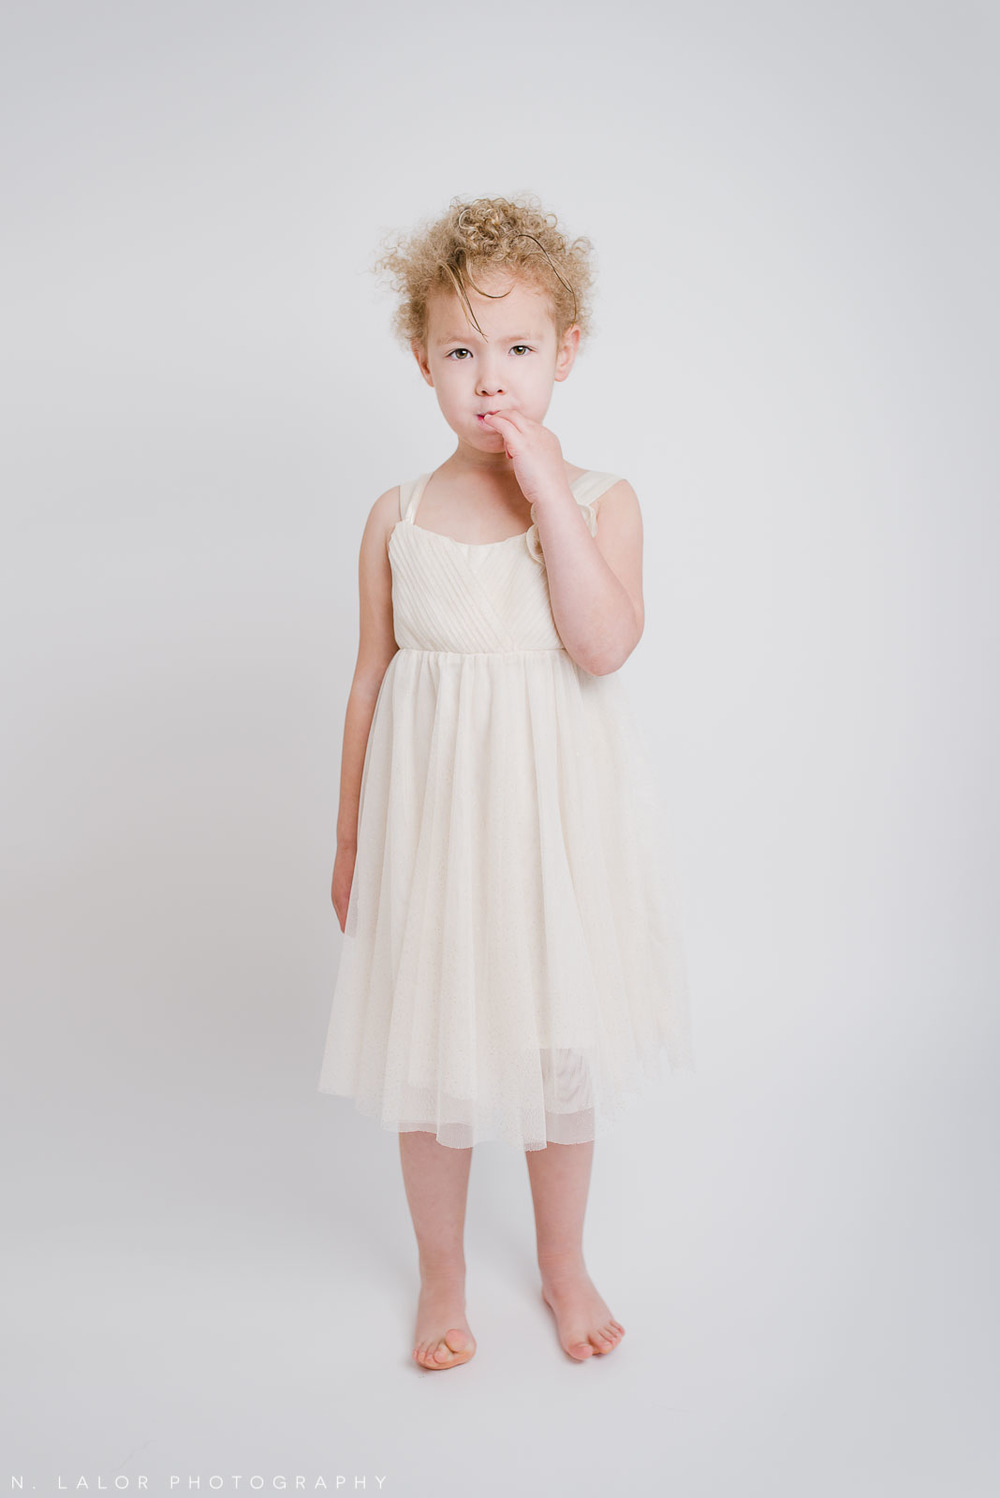 Simple studio portrait of a 4-year old girl wearing a white dress. By N. Lalor Photography. Greenwich, CT.